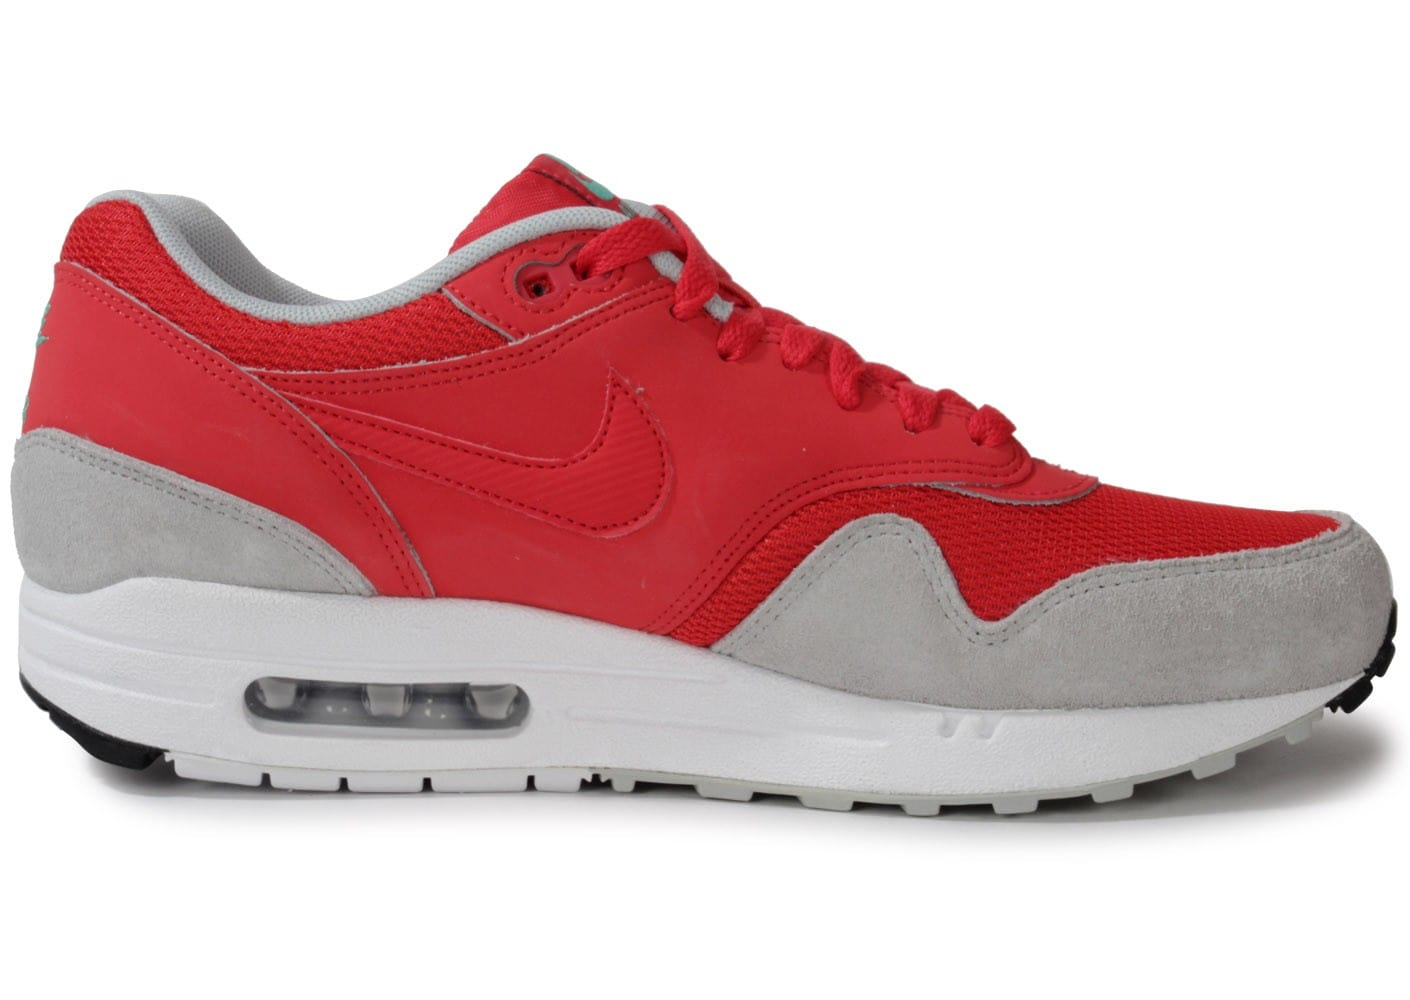 Nike Air Max 1 Essential Chausport Rouge Chaussures Baskets Homme Chausport Essential a07dc3